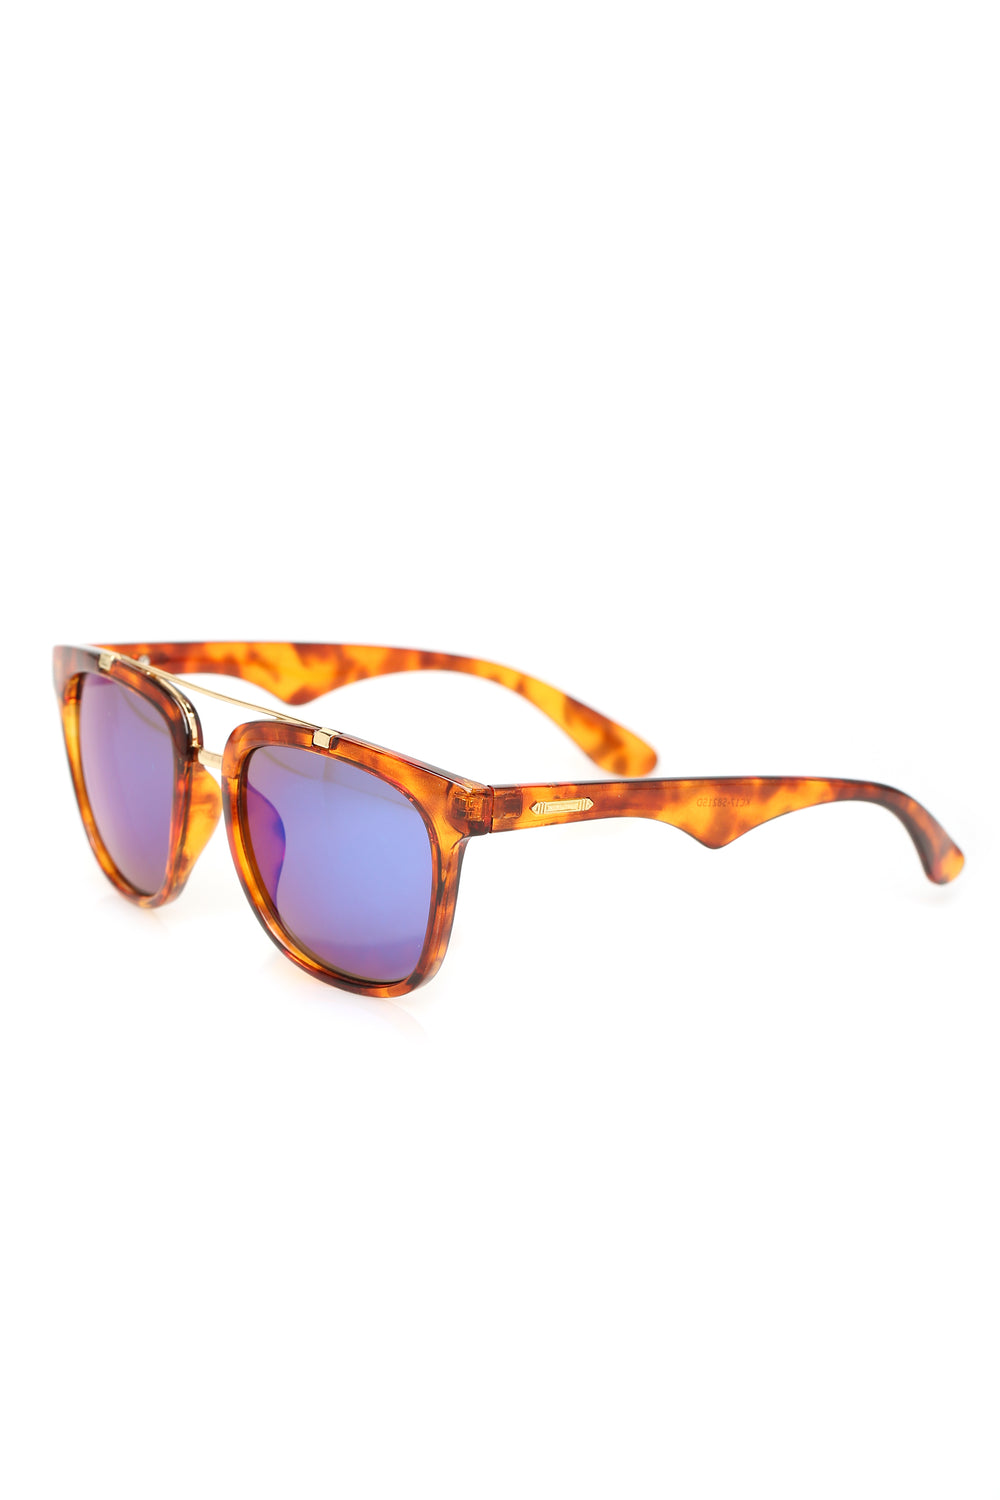 Browser Sunglasses - Tortoise